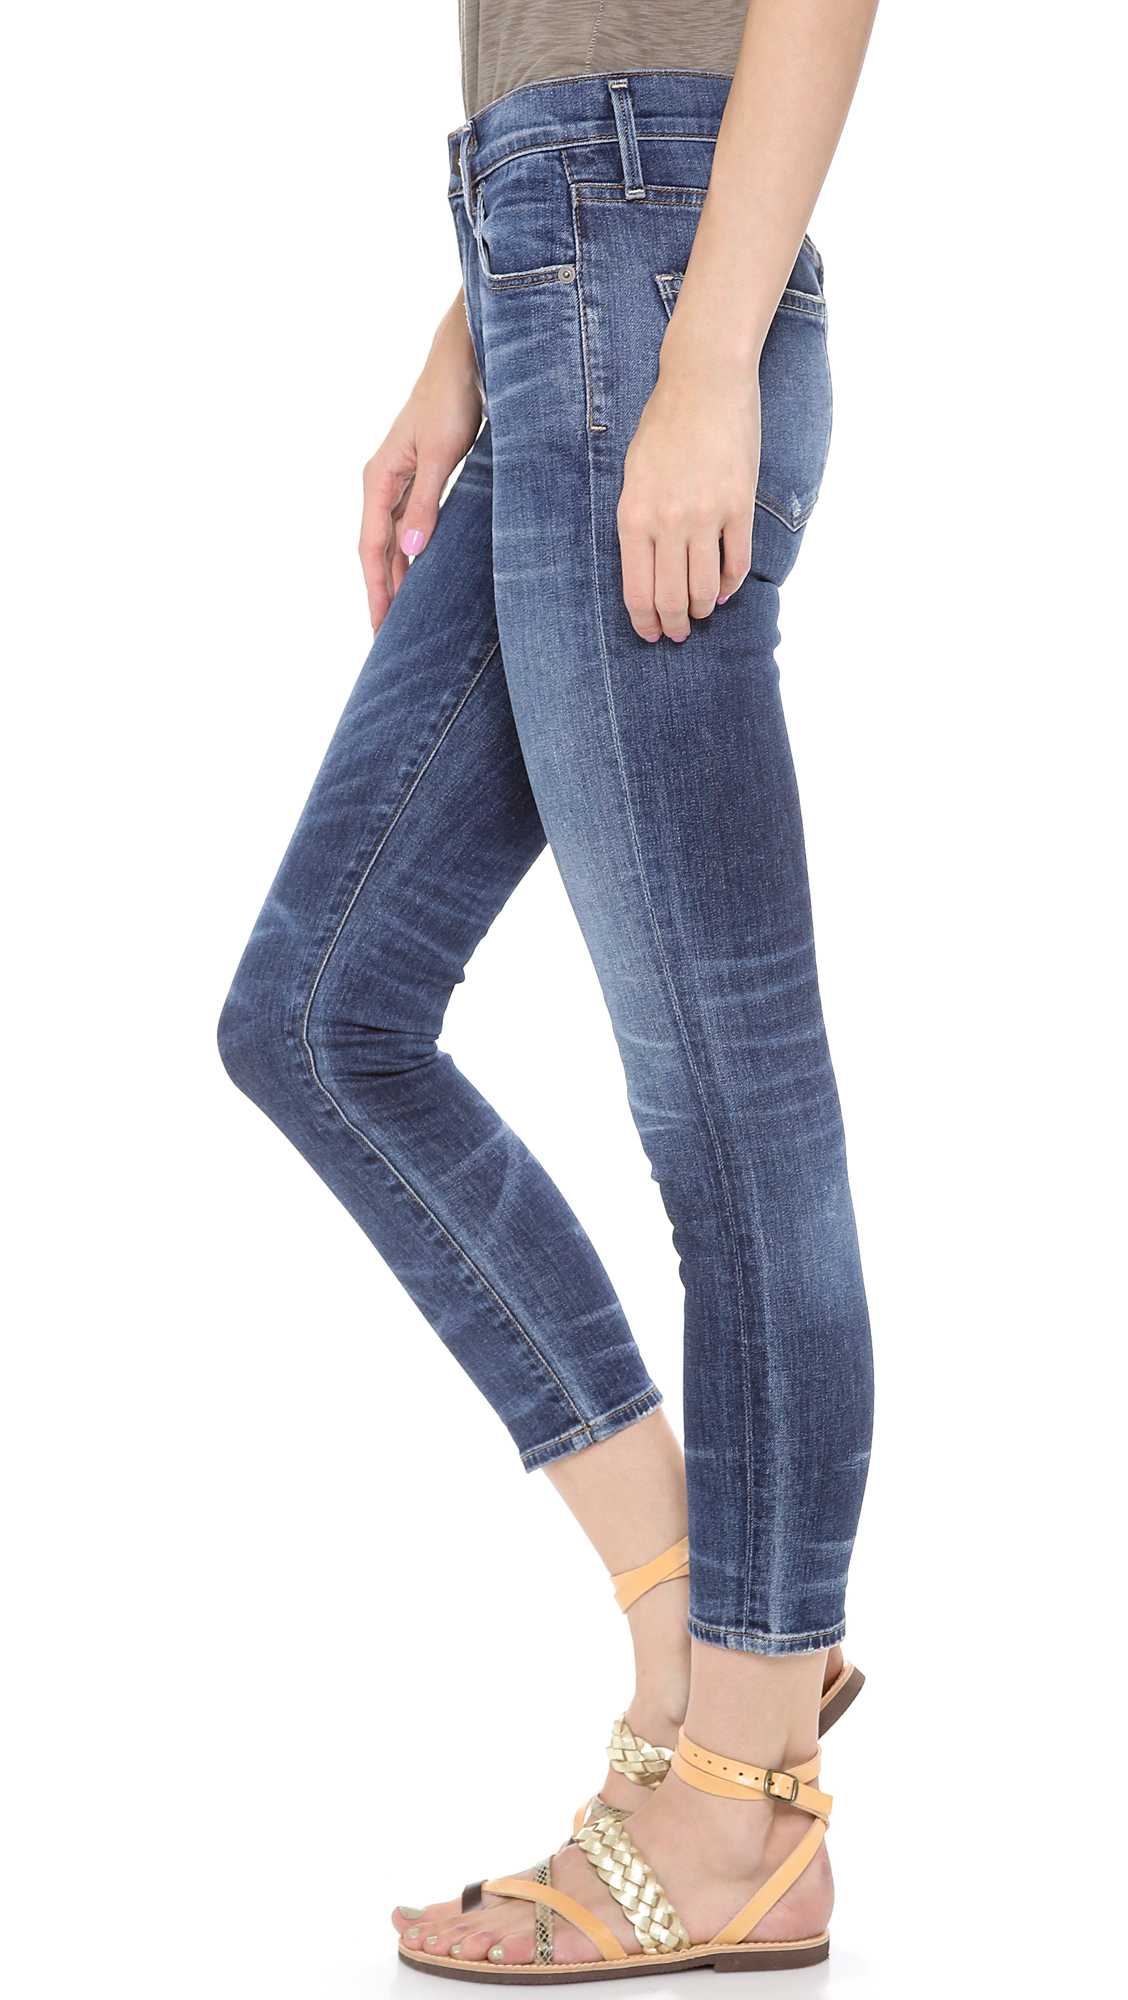 Citizens of humanity The Rocket Crop Jeans in Blue | Lyst